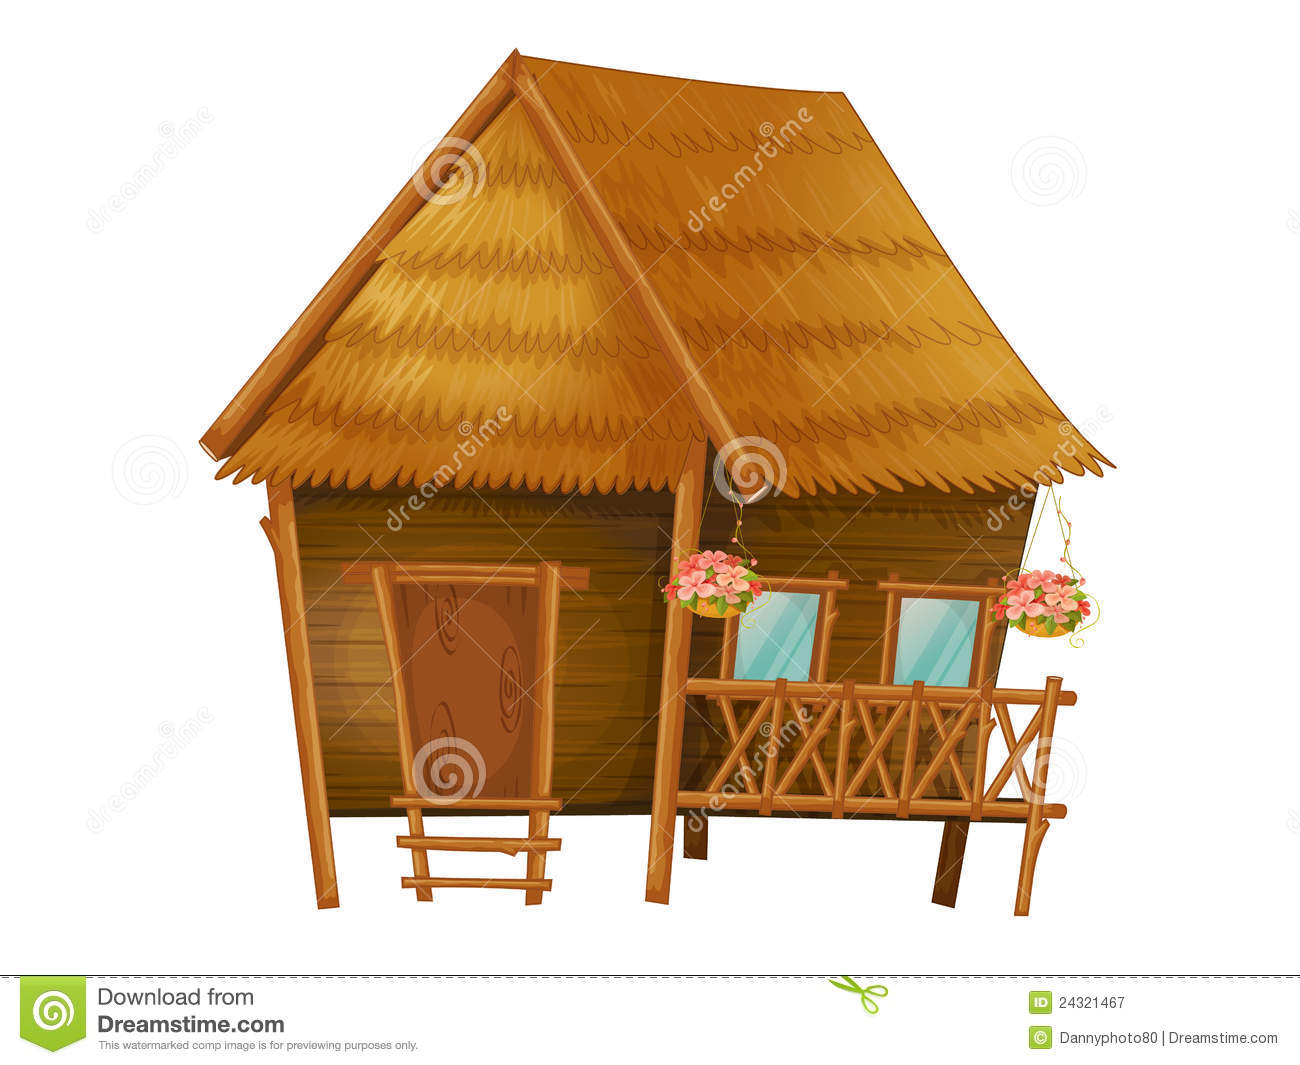 Cartoon hut stock vector. Illustration of brown, isolated ... House Made Of Sticks Cartoon